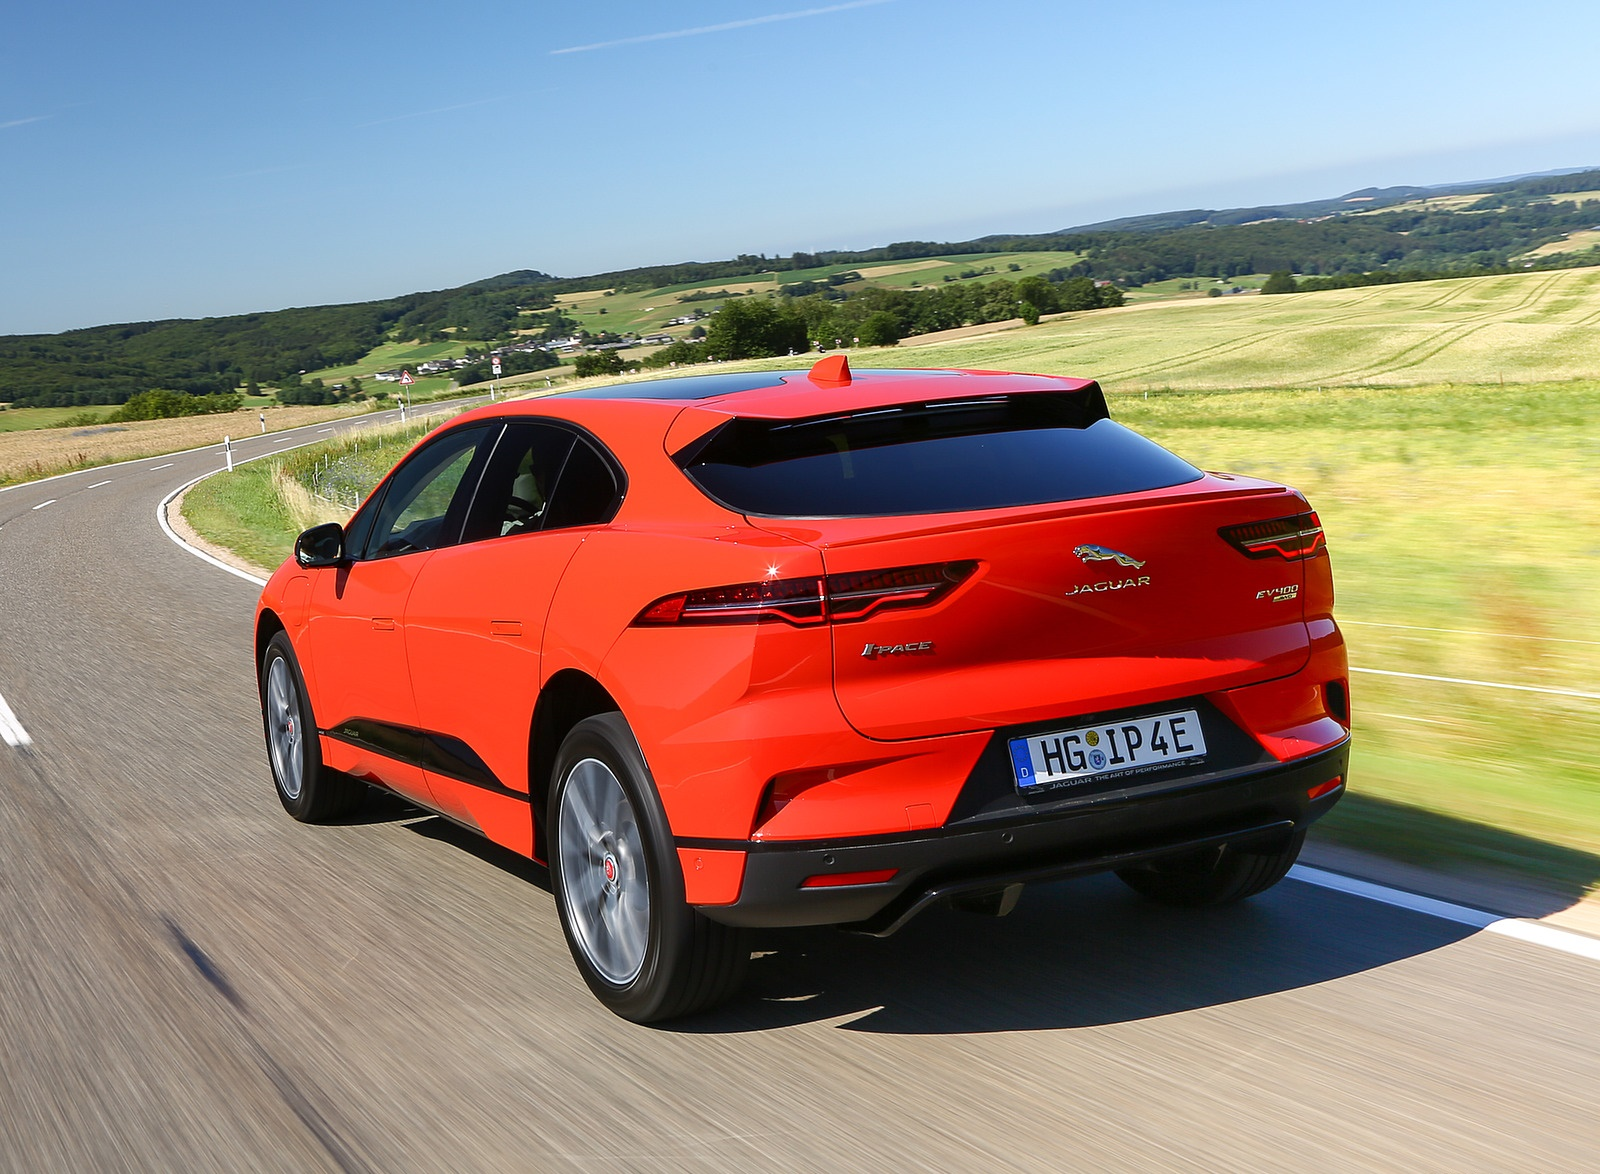 2019 Jaguar I-PACE EV400 AWD HSE First Edition (Color: Photon Red) Rear Three-Quarter Wallpapers #18 of 192